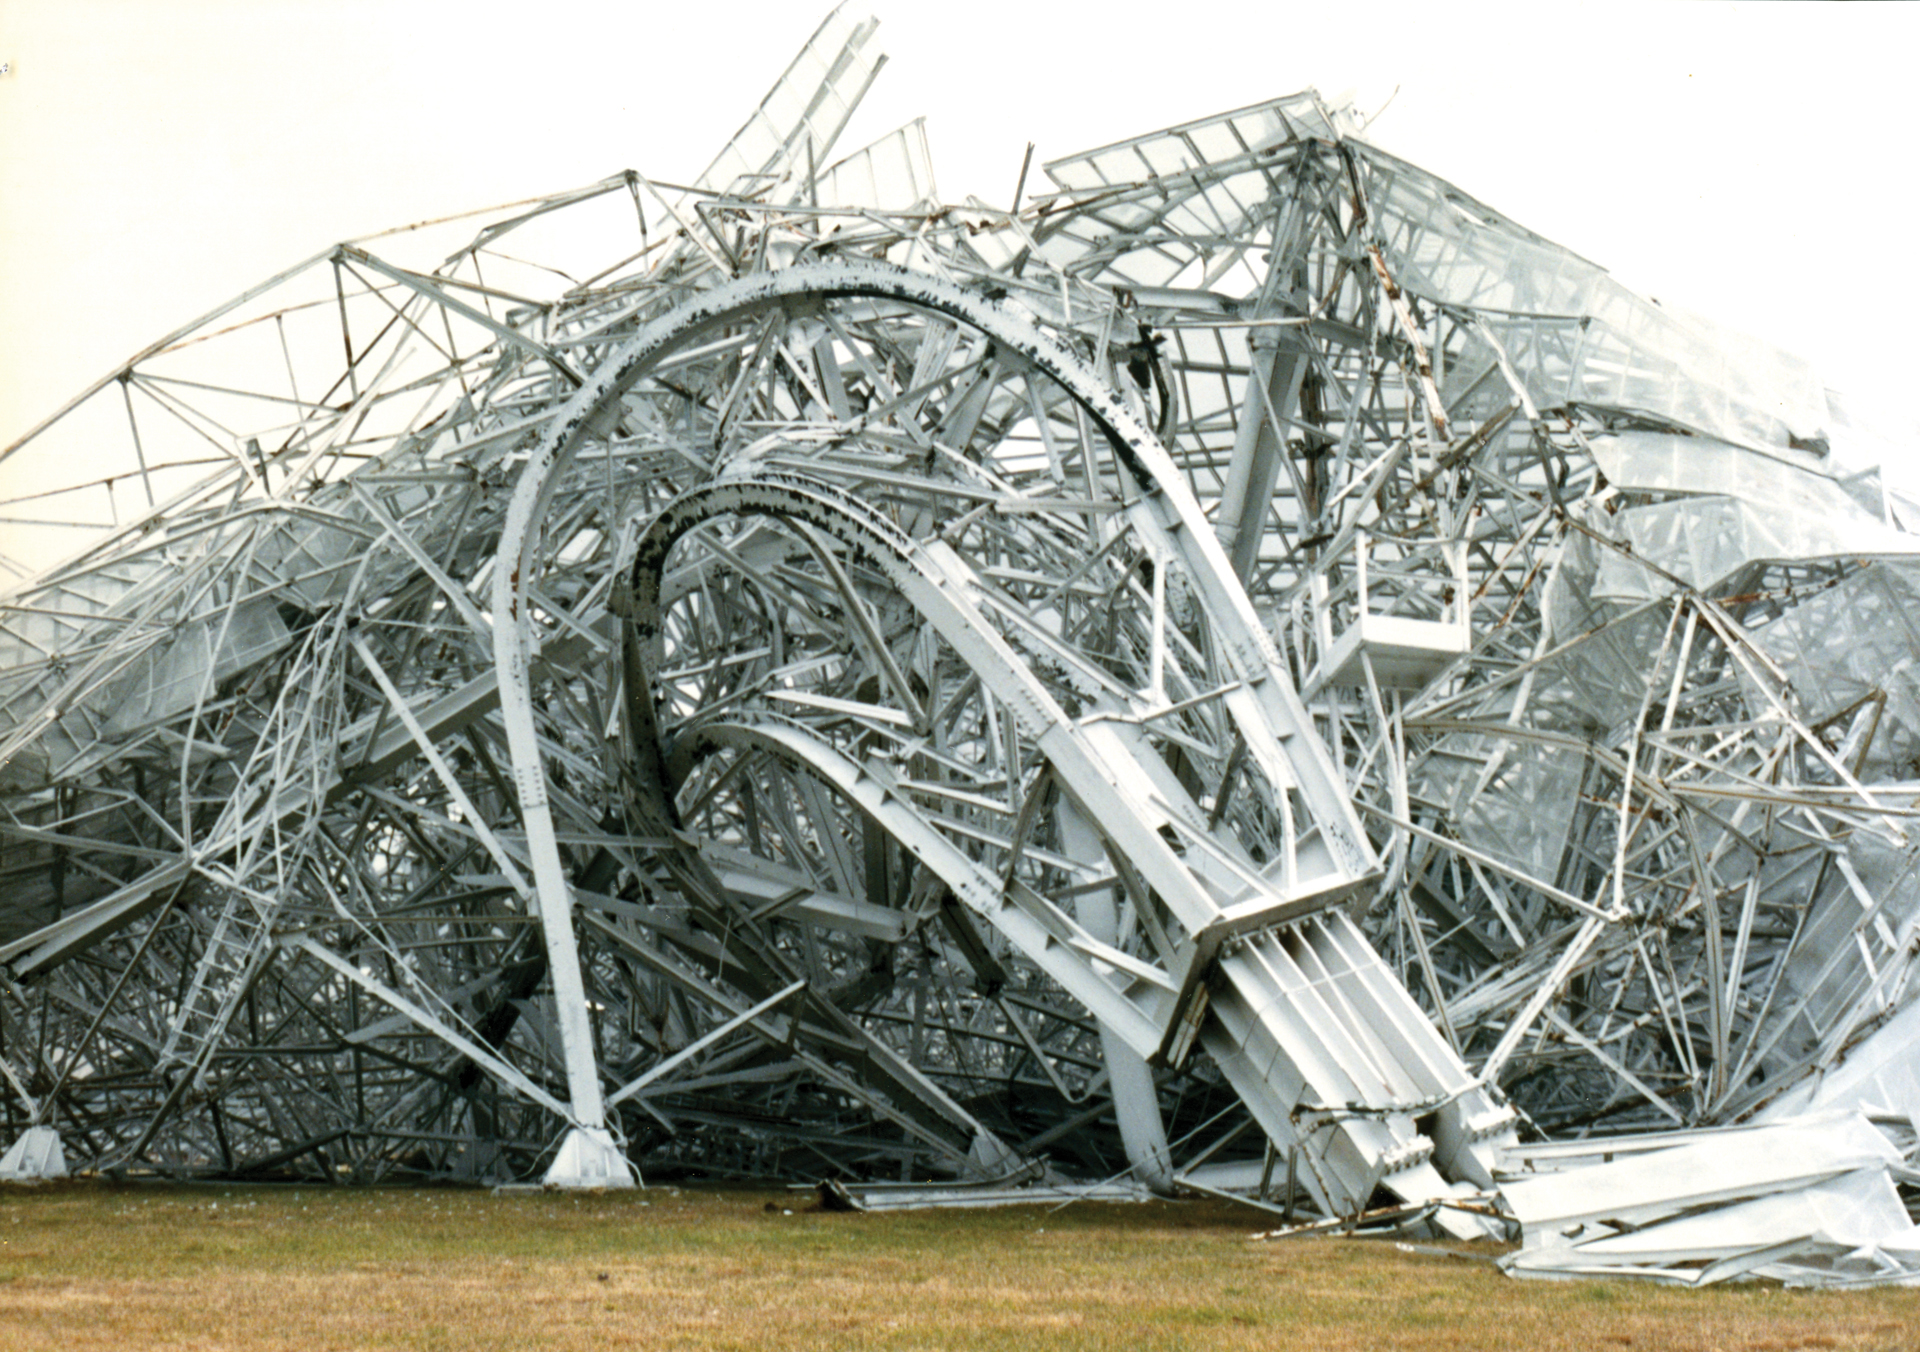 Collapsed metal of the 300-foot telescope